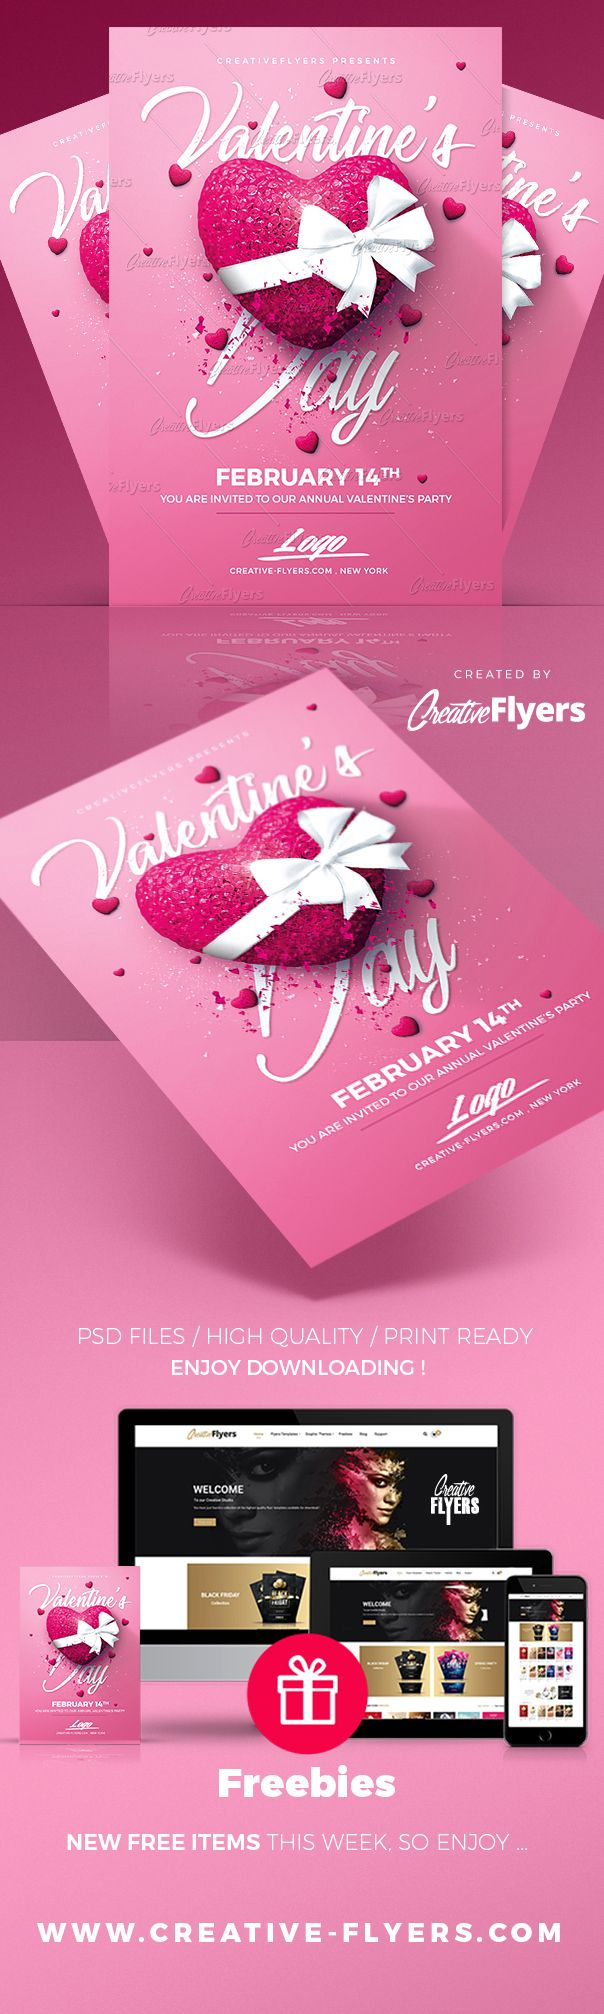 Creative Valentine's Day Flyers Enjoy downloading the Premium Photoshop PSD Flyer / poster Template designed by Creative Flyers perfect to promote your Valentine Party ! #valentinesday #valentine #valentines #flyers #templates #creativeflyers